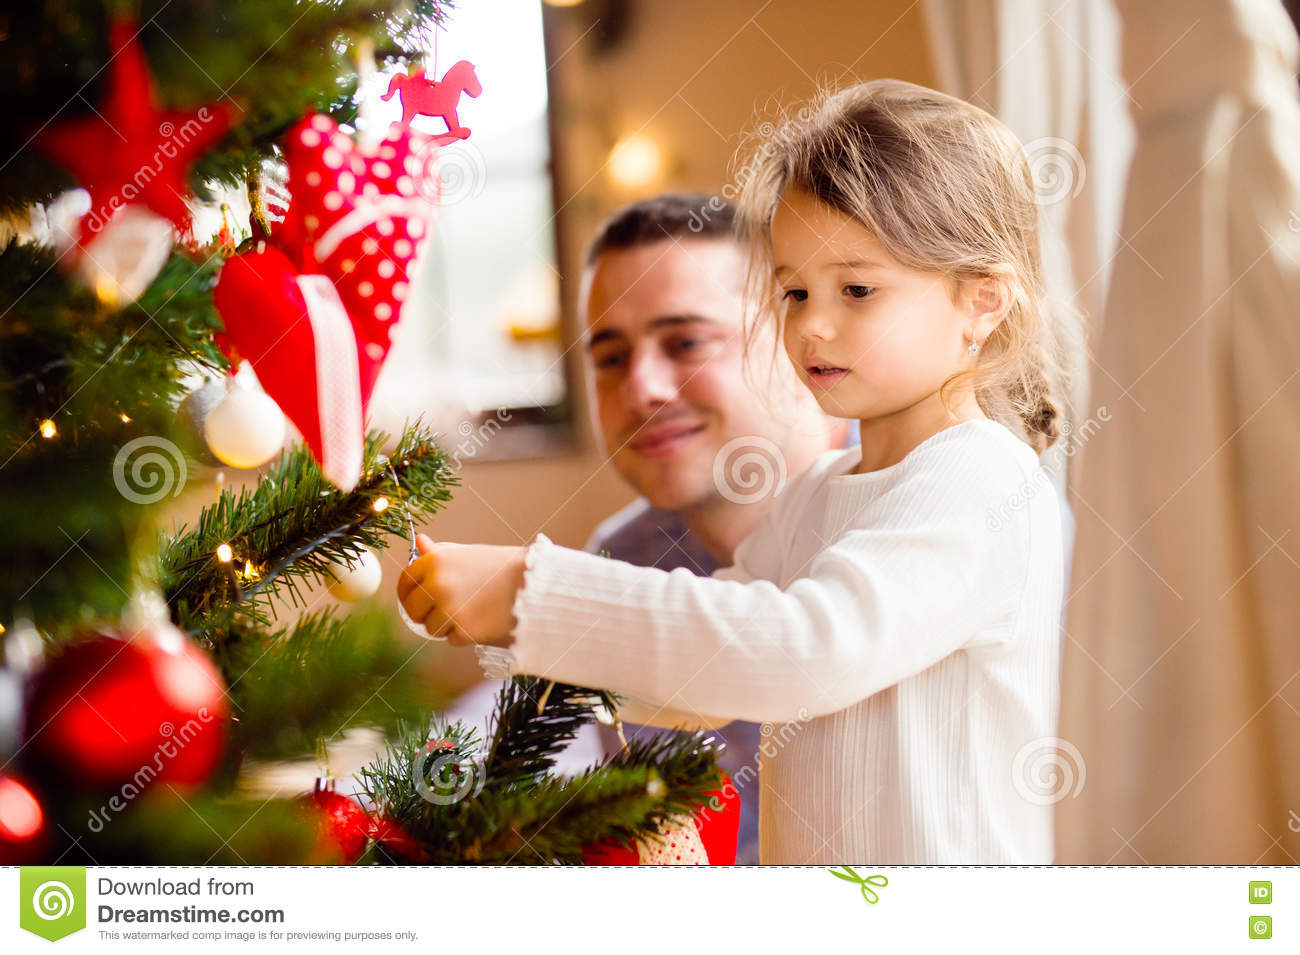 Young father with daugter decorating Christmas tree together.